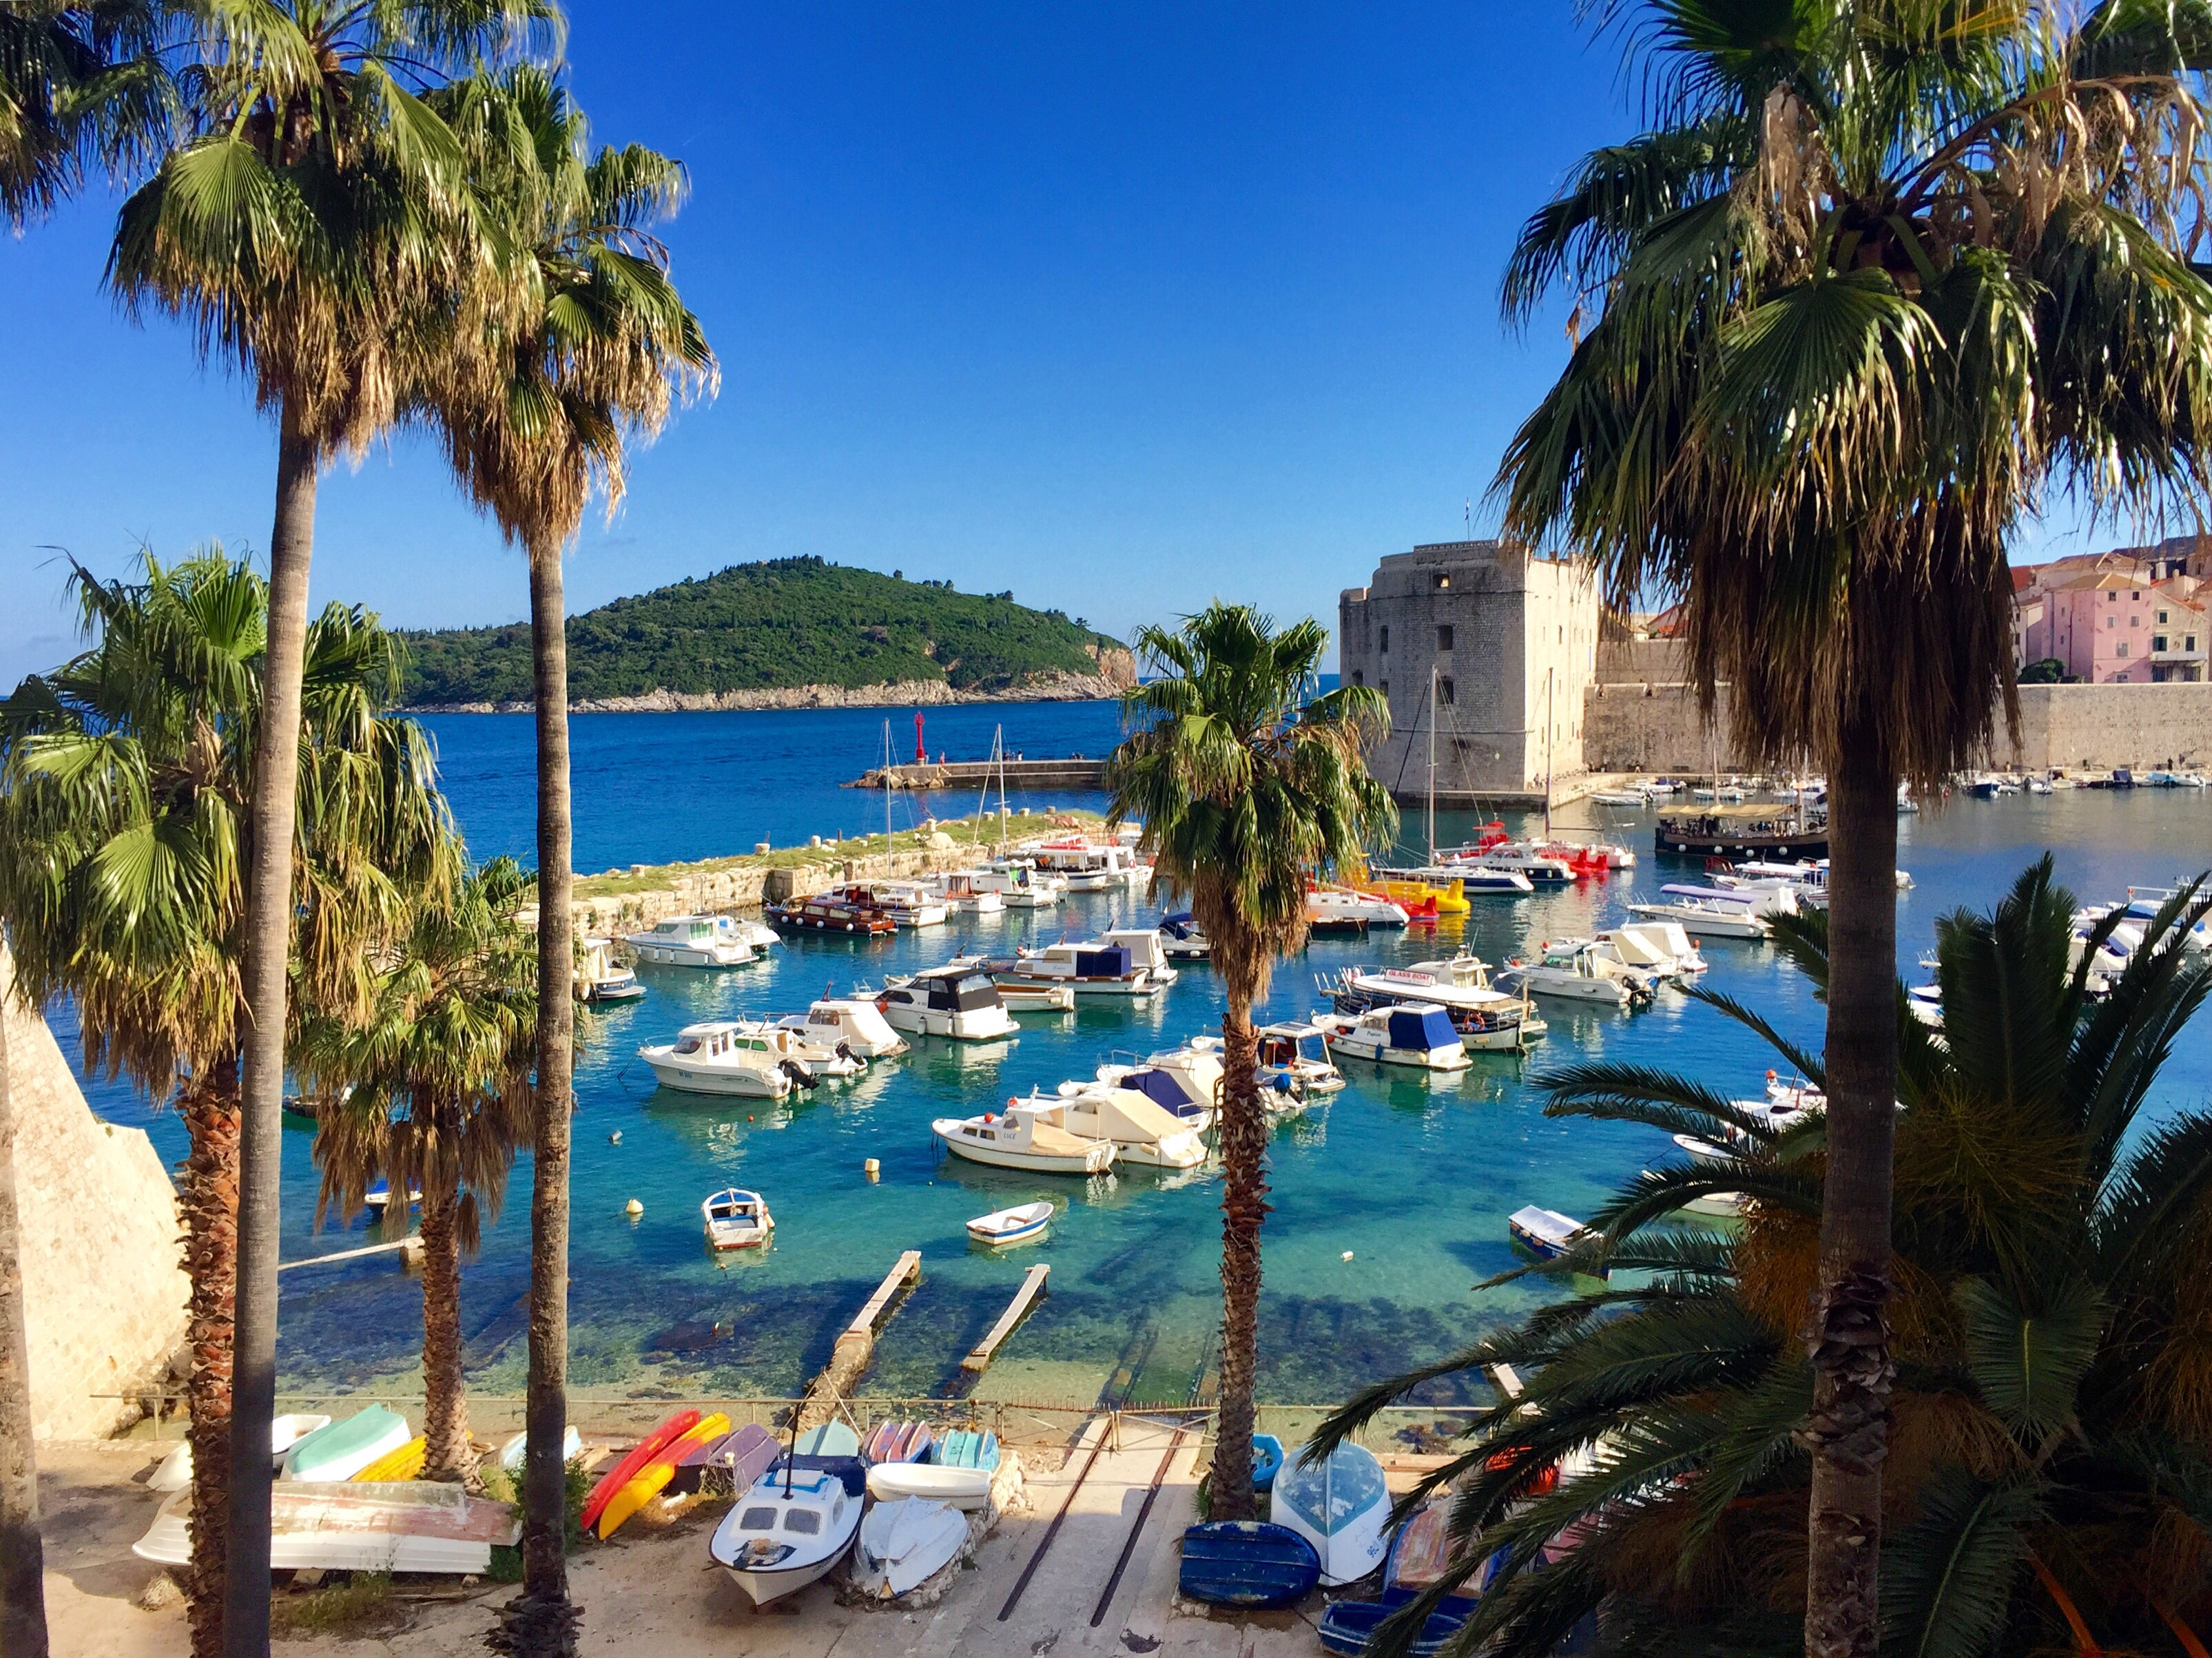 5-choses-a-faire-a-dubrovnik